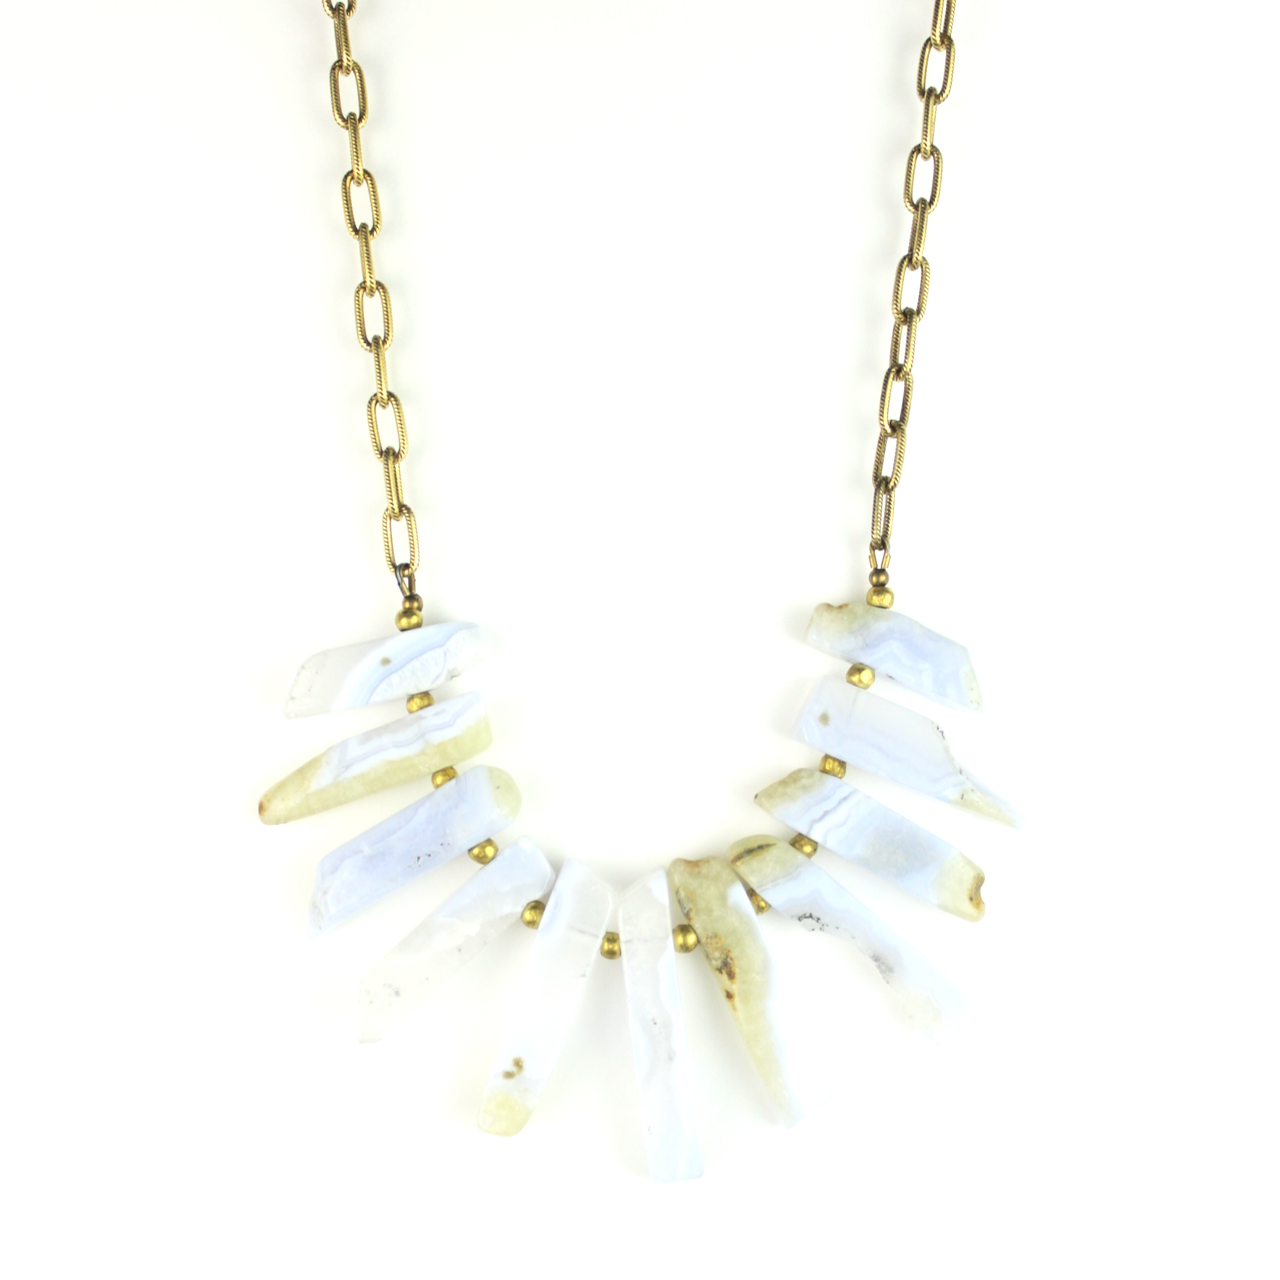 Bella Vita Jewelry - Natural Stone Bib Necklace | Blue Lace Agate